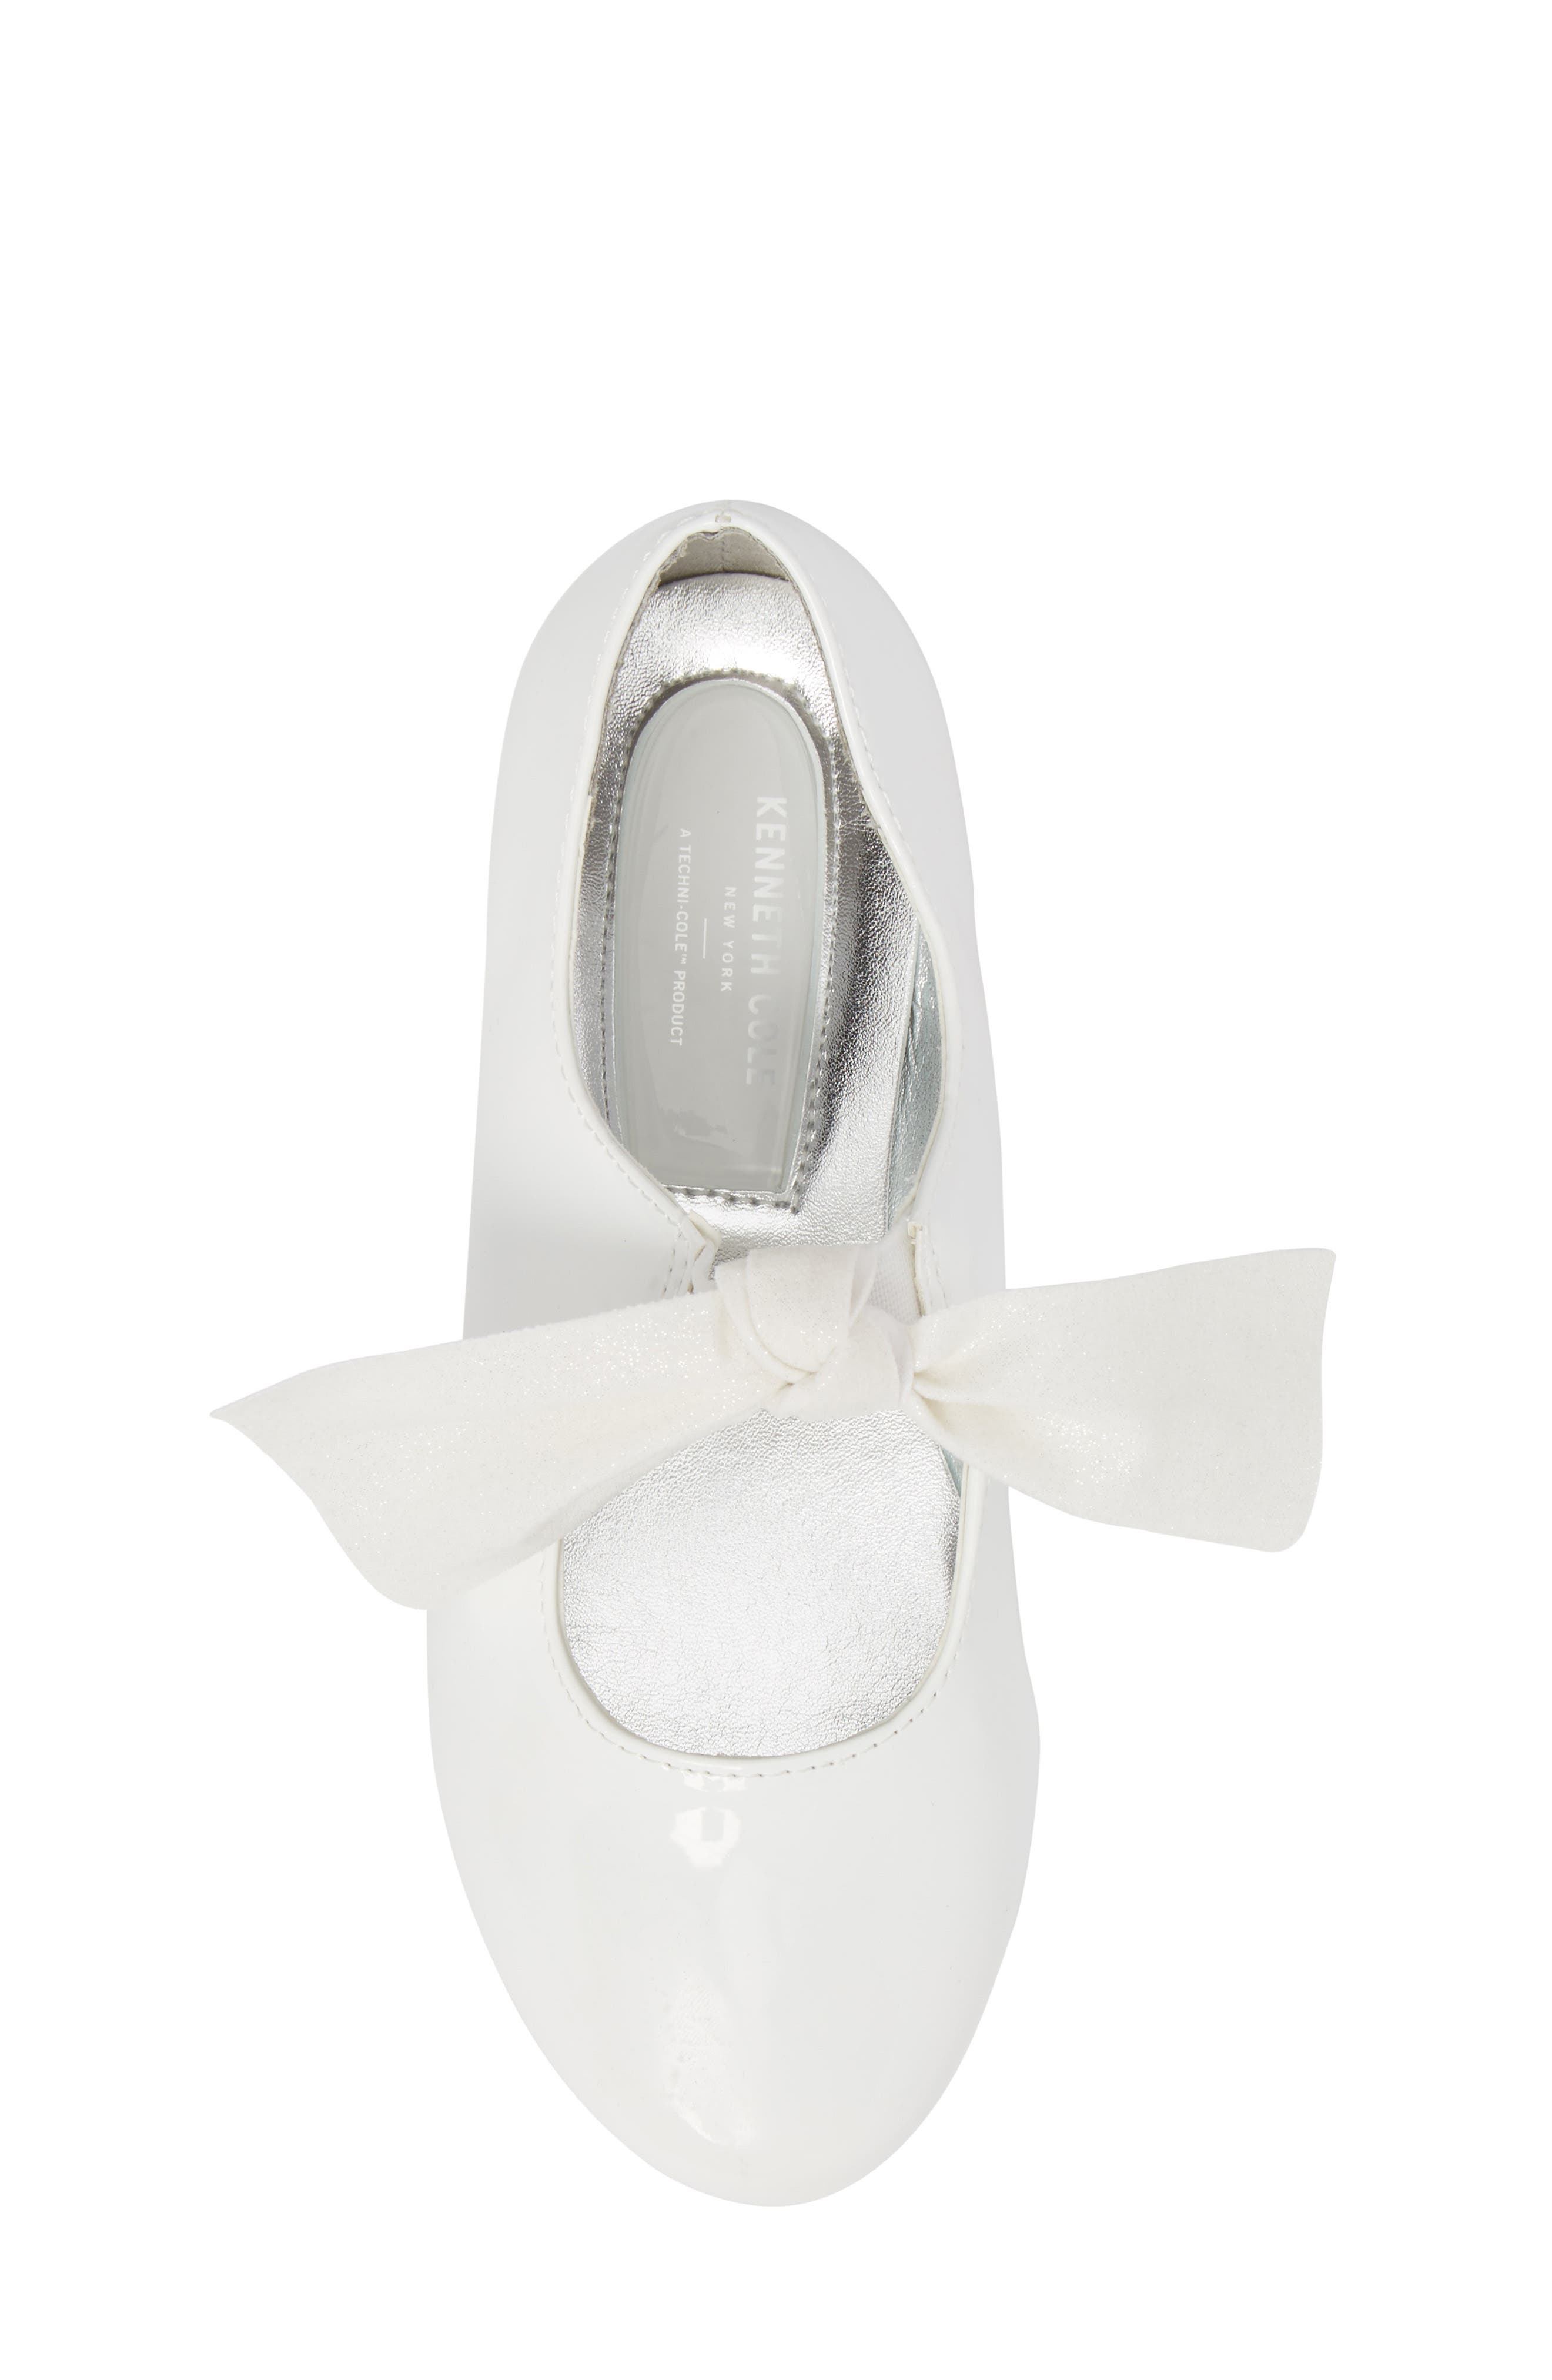 KENNETH COLE NEW YORK, Reaction Kenneth Cole Rose Bow Mary Jane Flat, Alternate thumbnail 5, color, WHITE PATENT